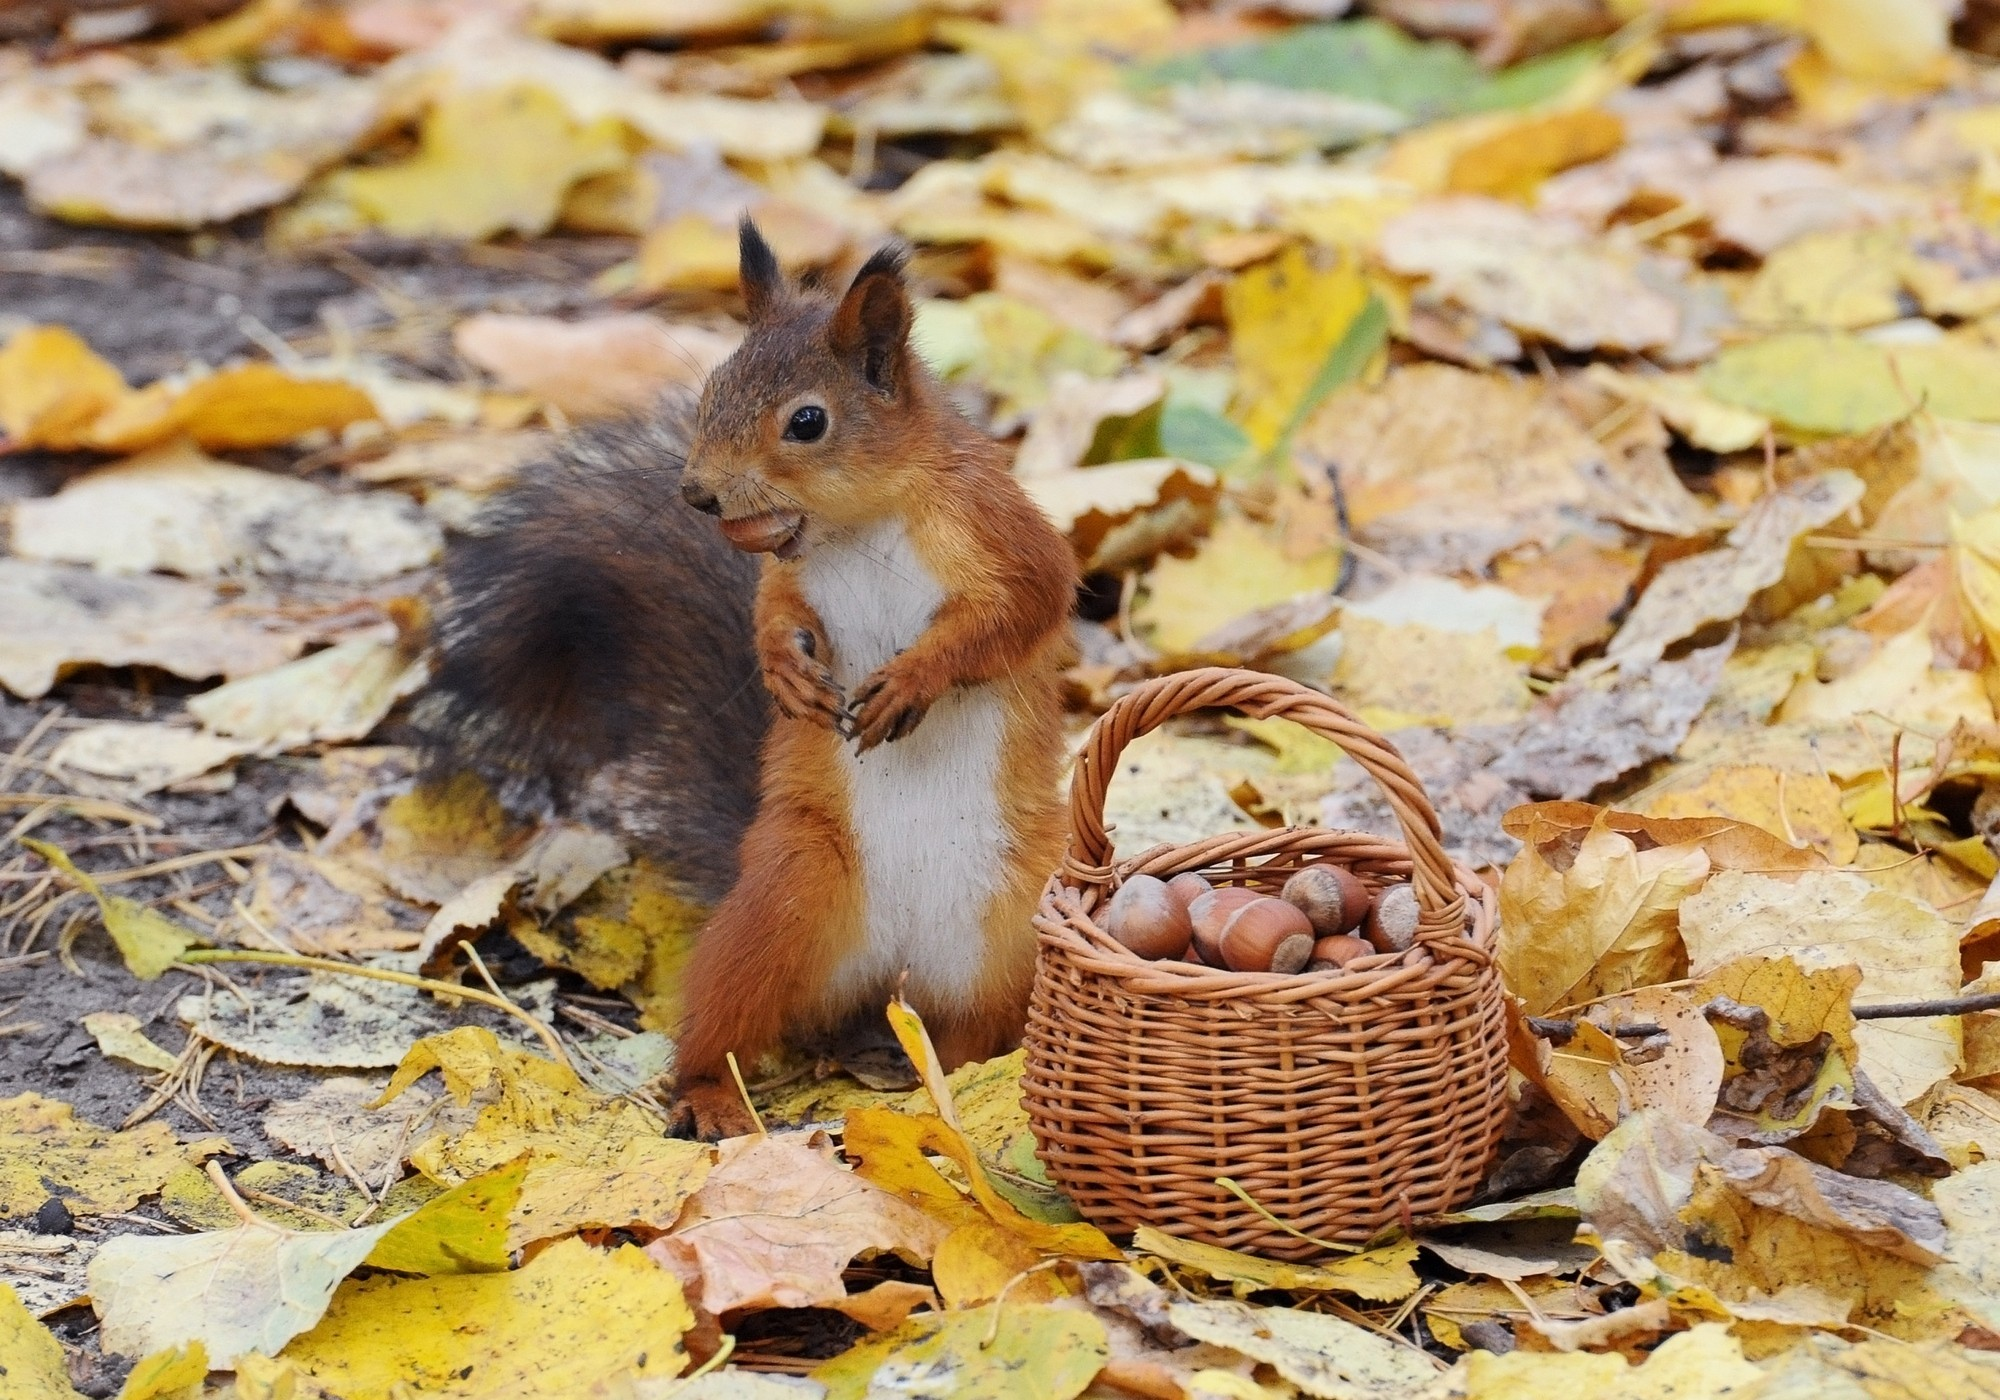 Fall Wallpaper For Iphone 6 Plus Squirrel Computer Wallpapers Desktop Backgrounds